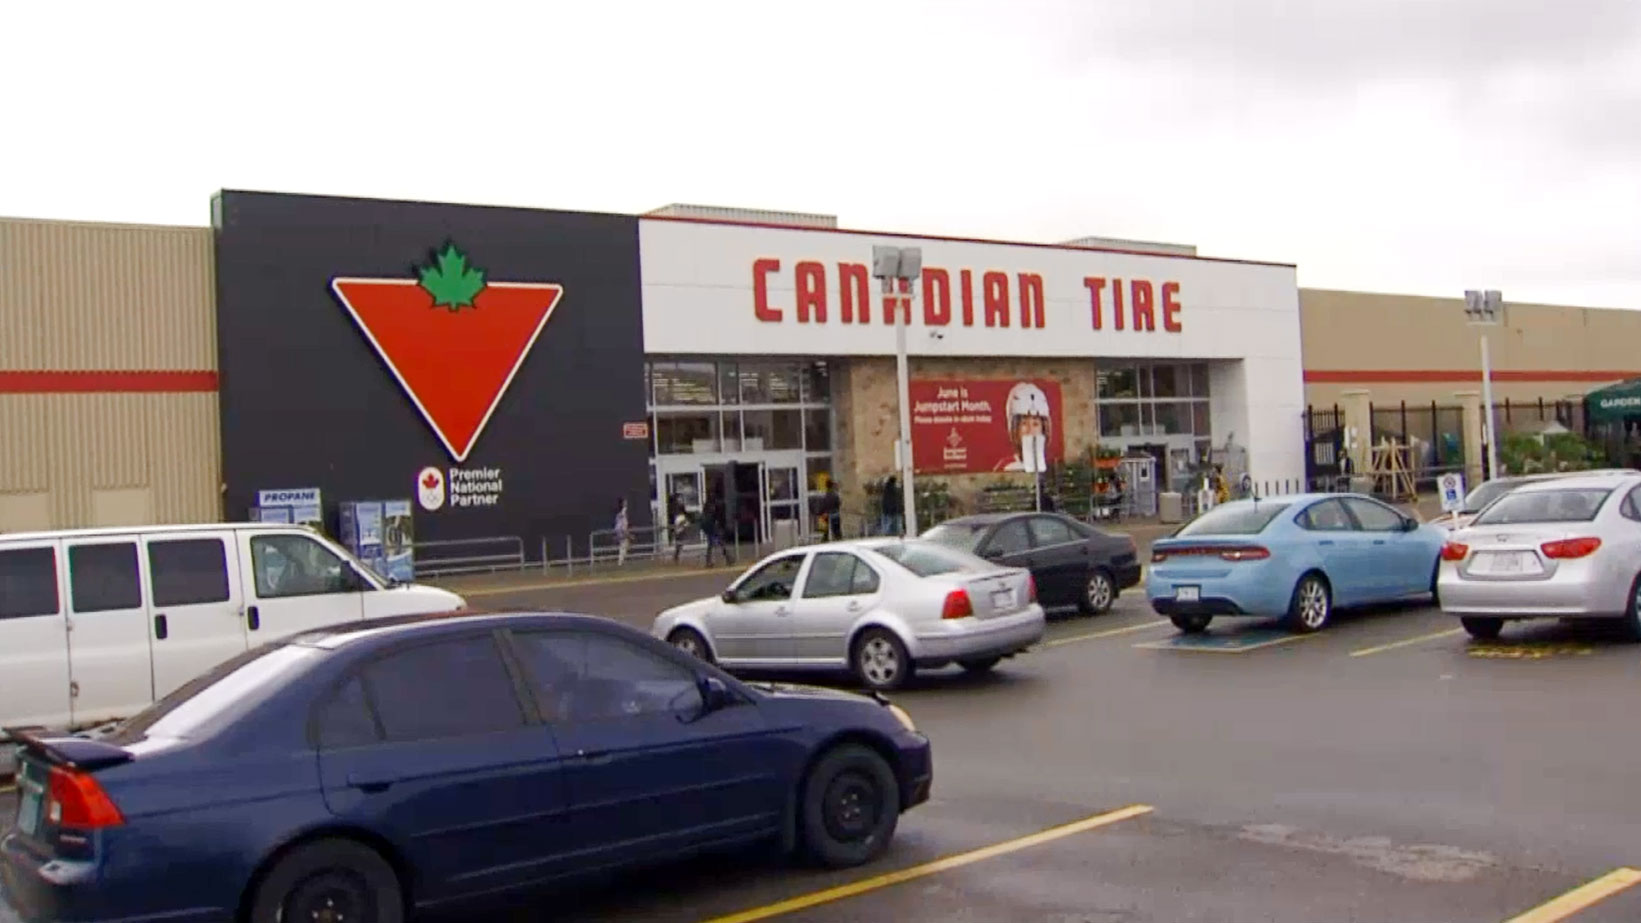 Woman, reportedly wearing Isis headband, accused of armed assault at Canadian Tire